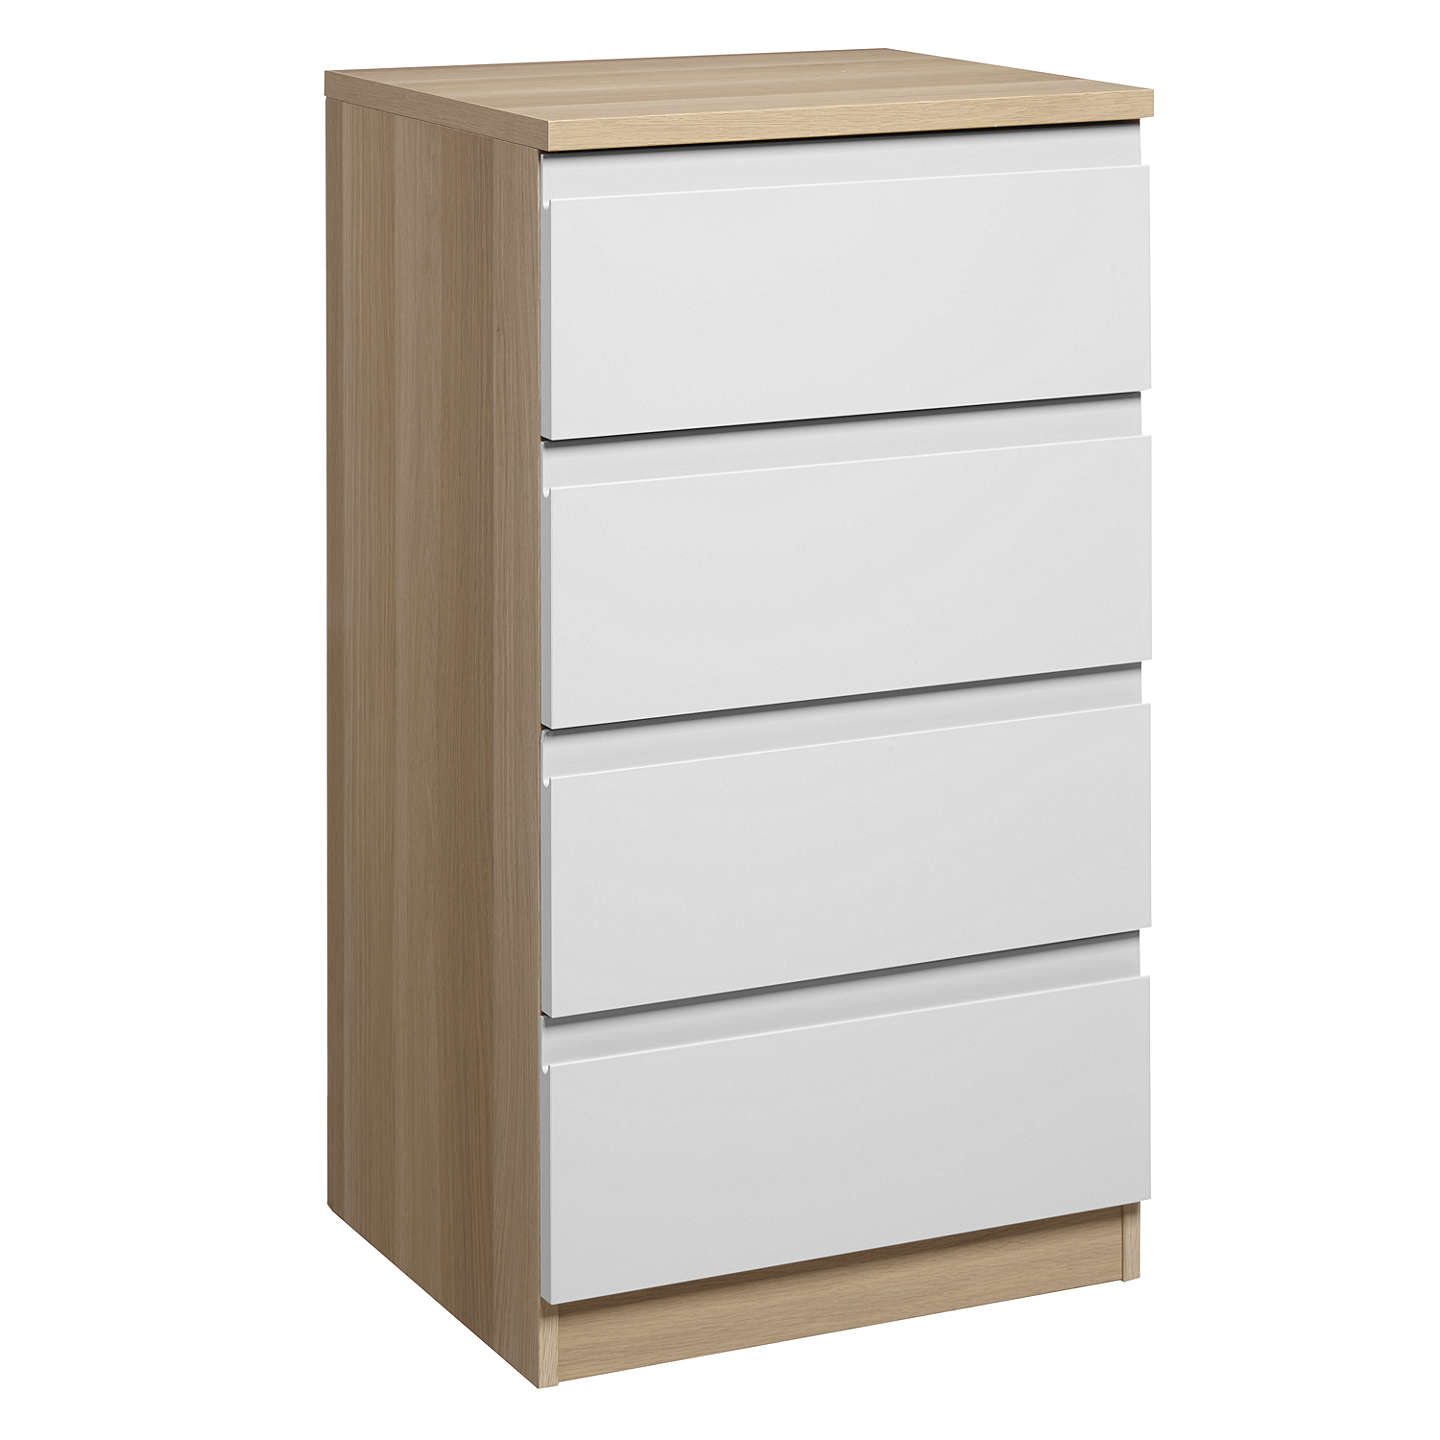 BuyHouse by John Lewis Mix it Narrow 4 Drawer Chest, Gloss White/Natural Oak Online at johnlewis.com